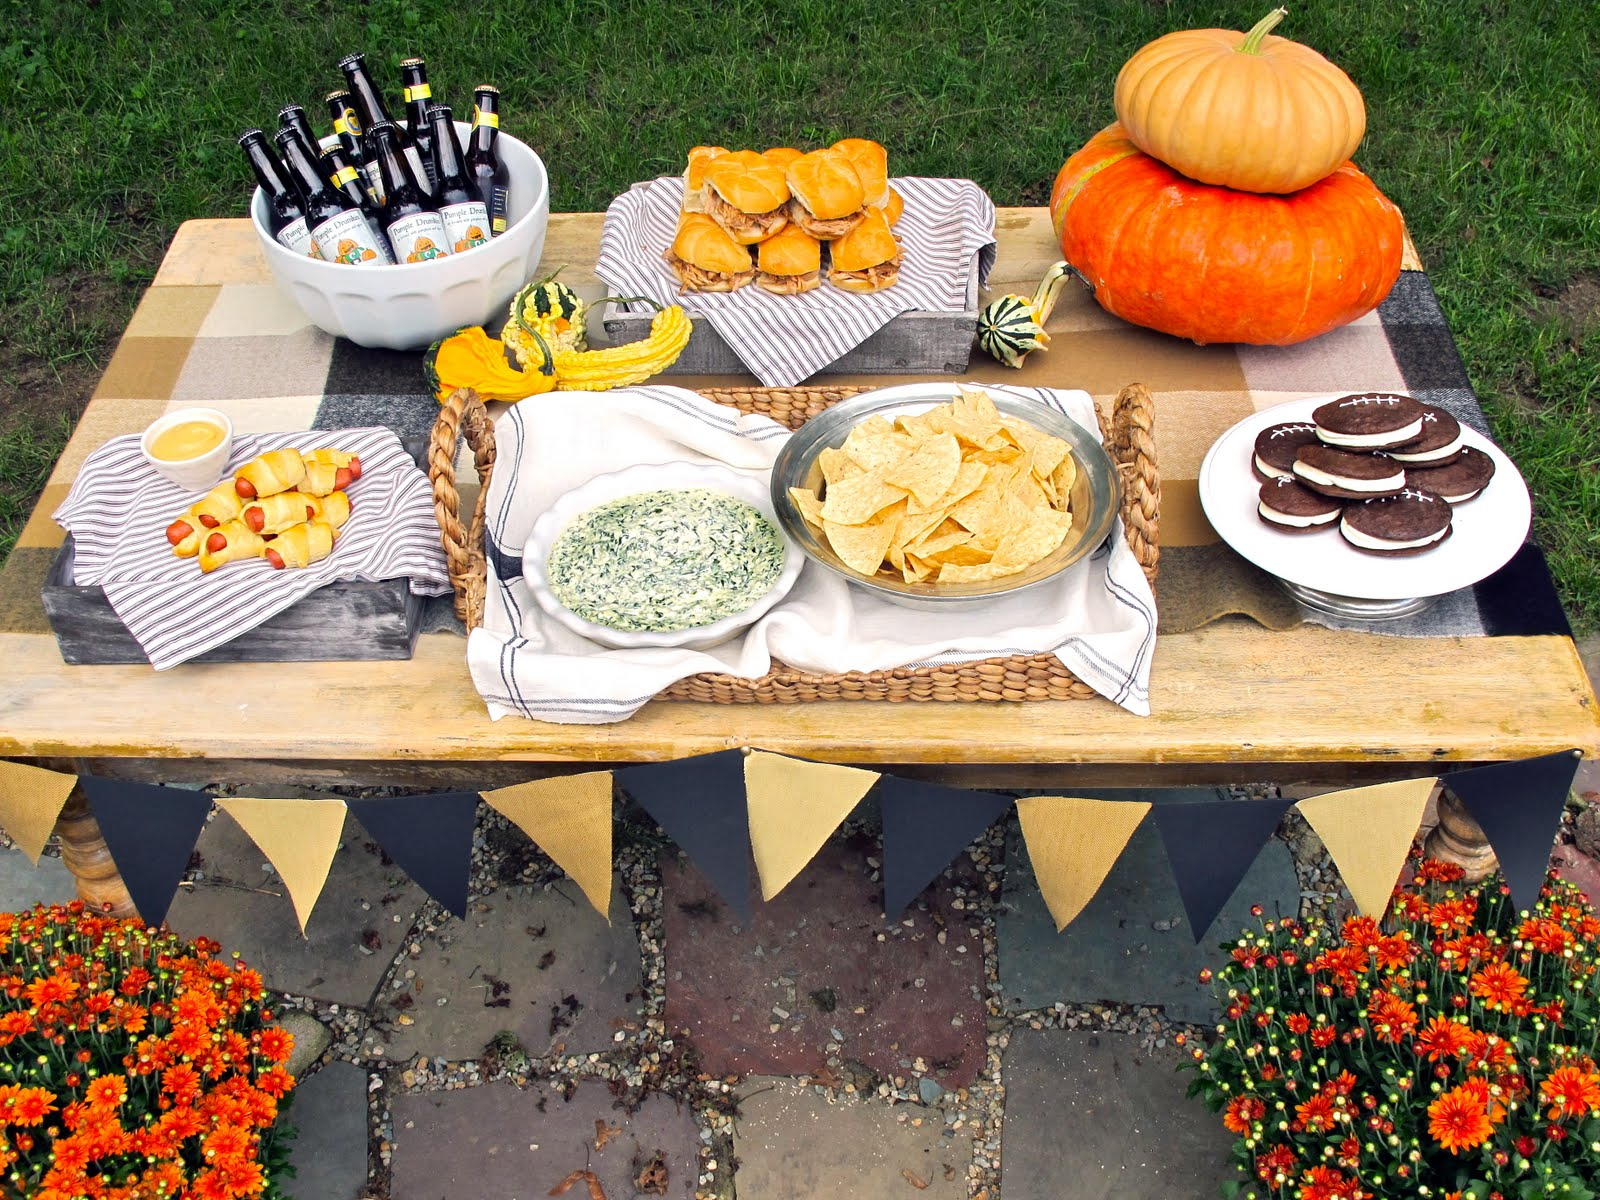 Table decoration for party - Tailgate Party Recipes Decor Ideas